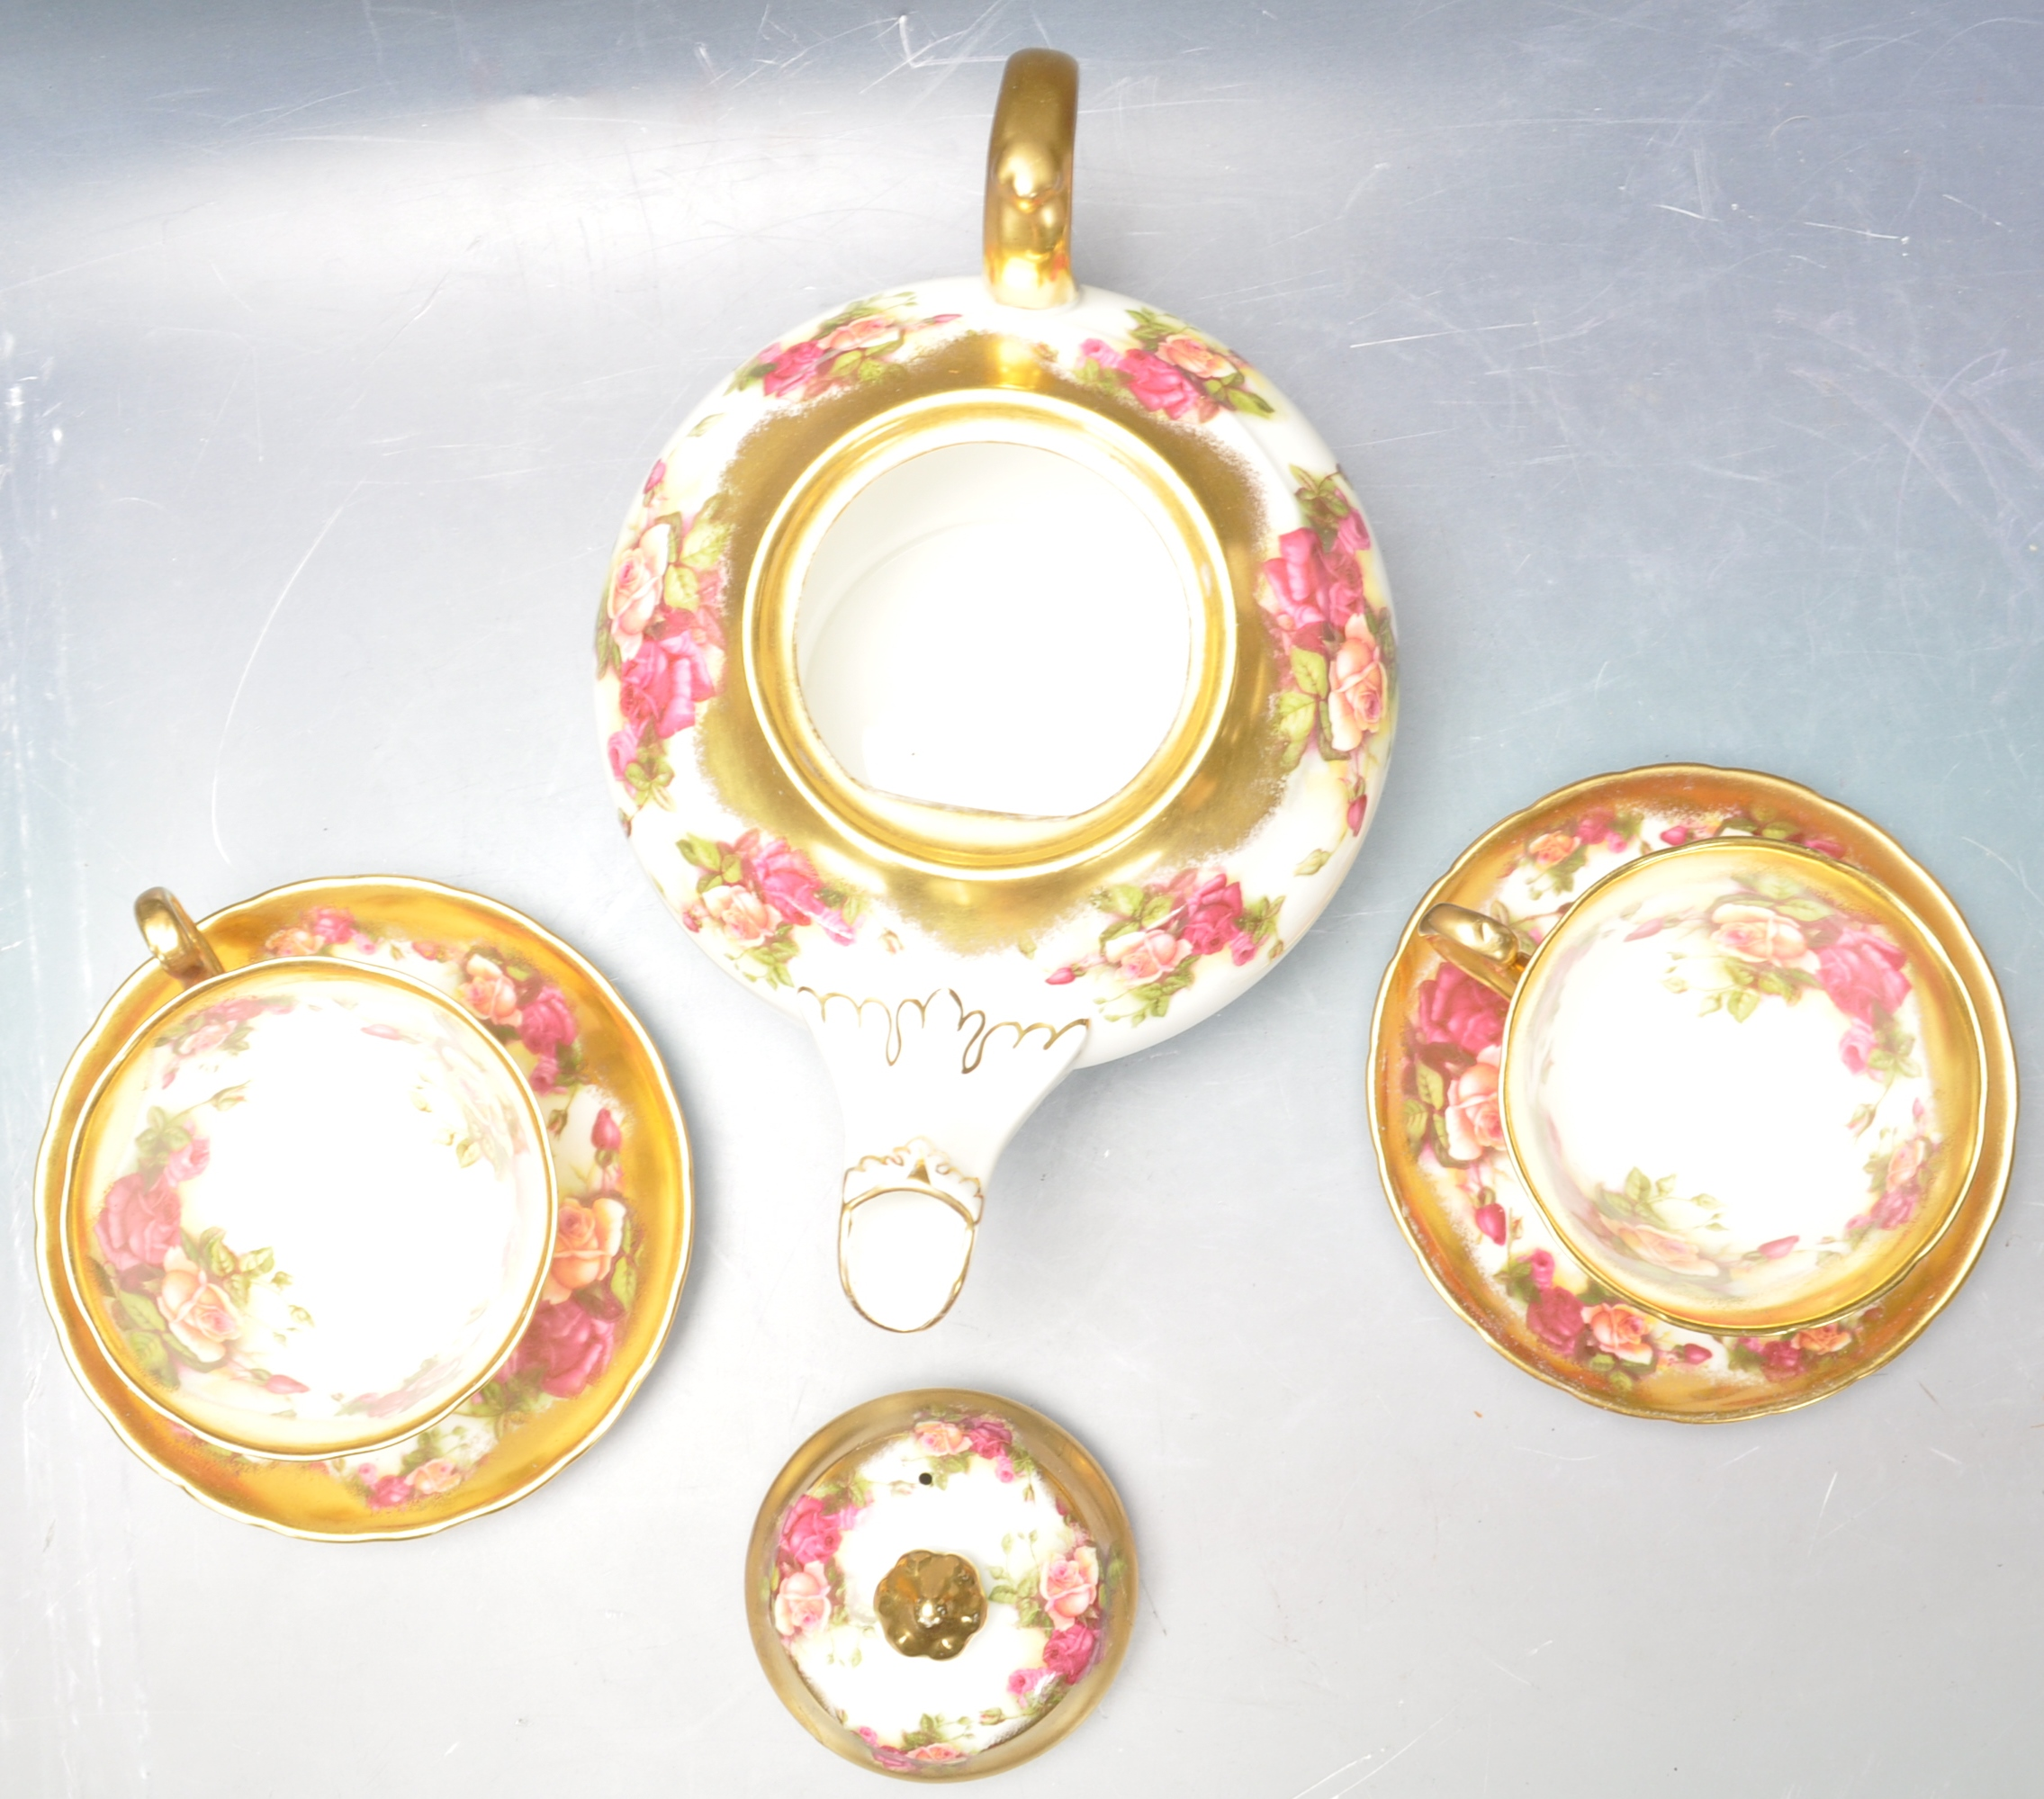 COLLECTION OF 20TH CENTURY ROYAL CHELSEA ENGLISH ROSE CHINA - Image 4 of 7